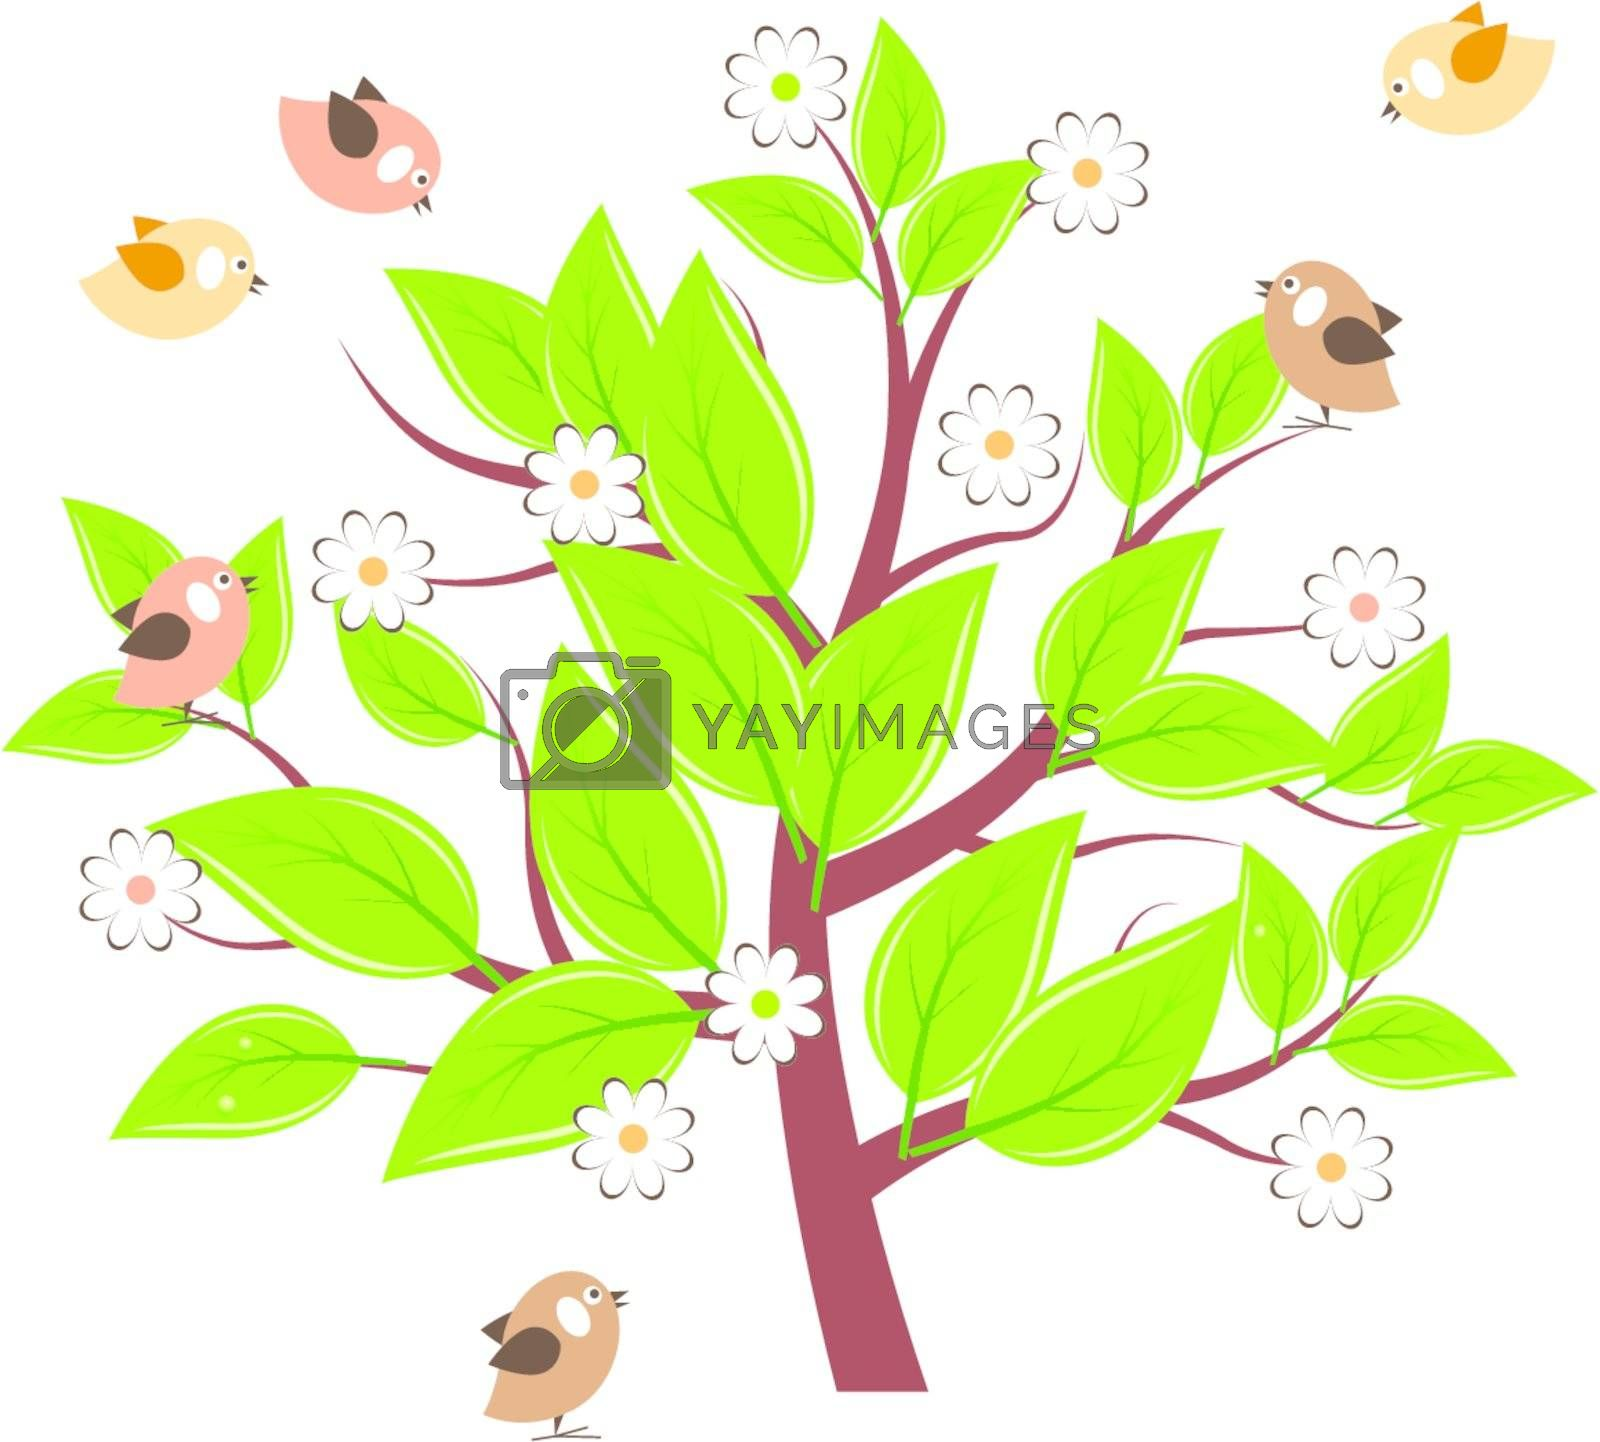 Stylized tree with green leaves and flying birds